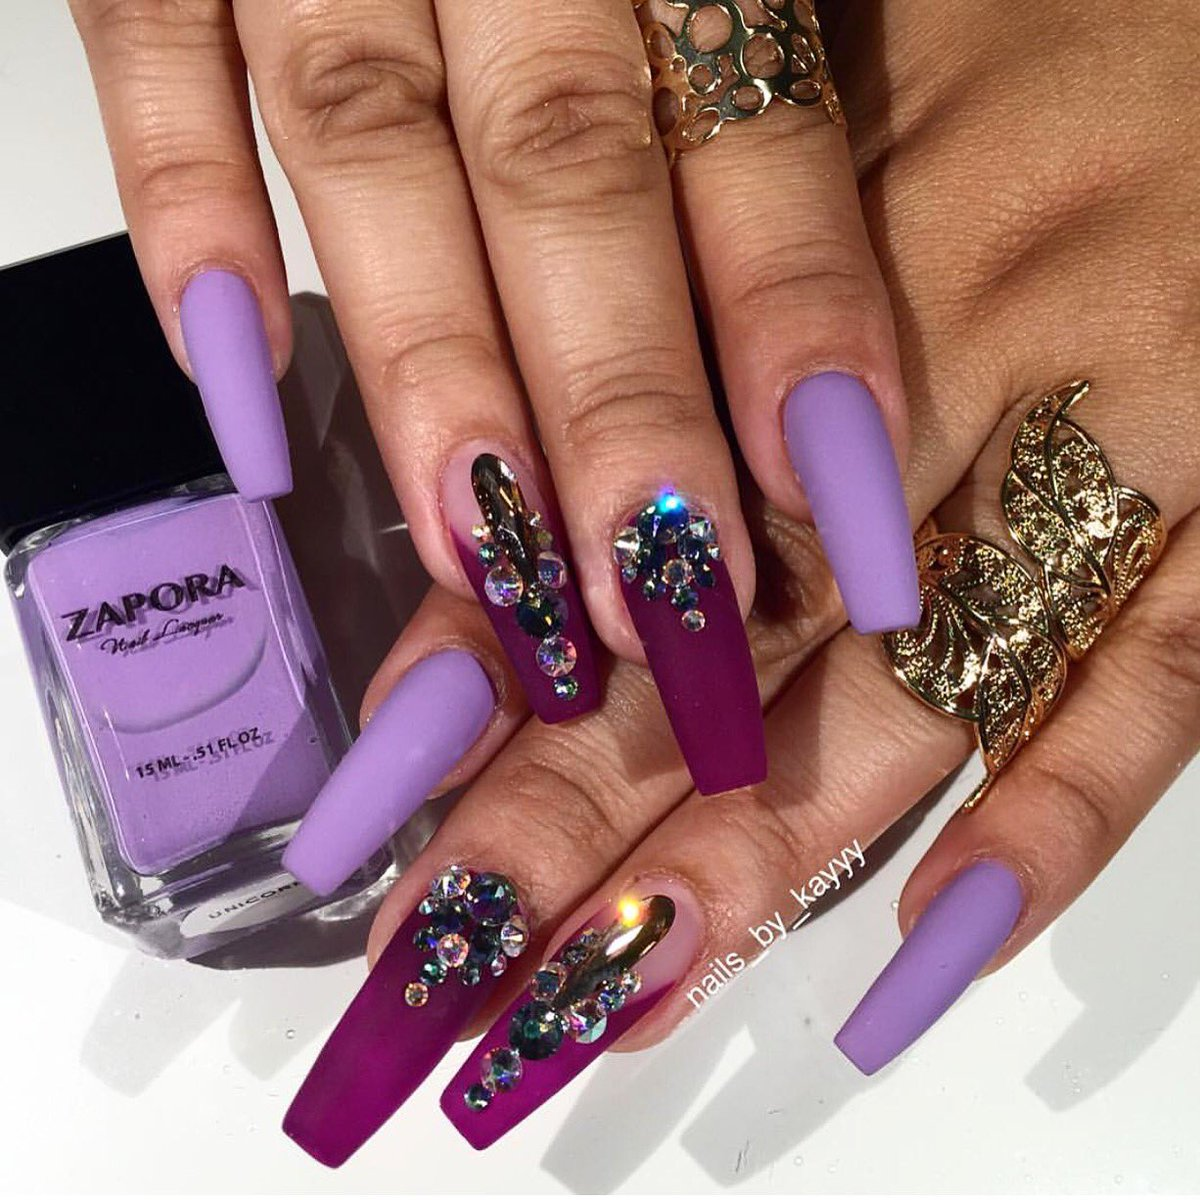 """ZAPORA Nail Lacquer On Twitter: """"💜💜💎🔮🍇 Loving This Set"""